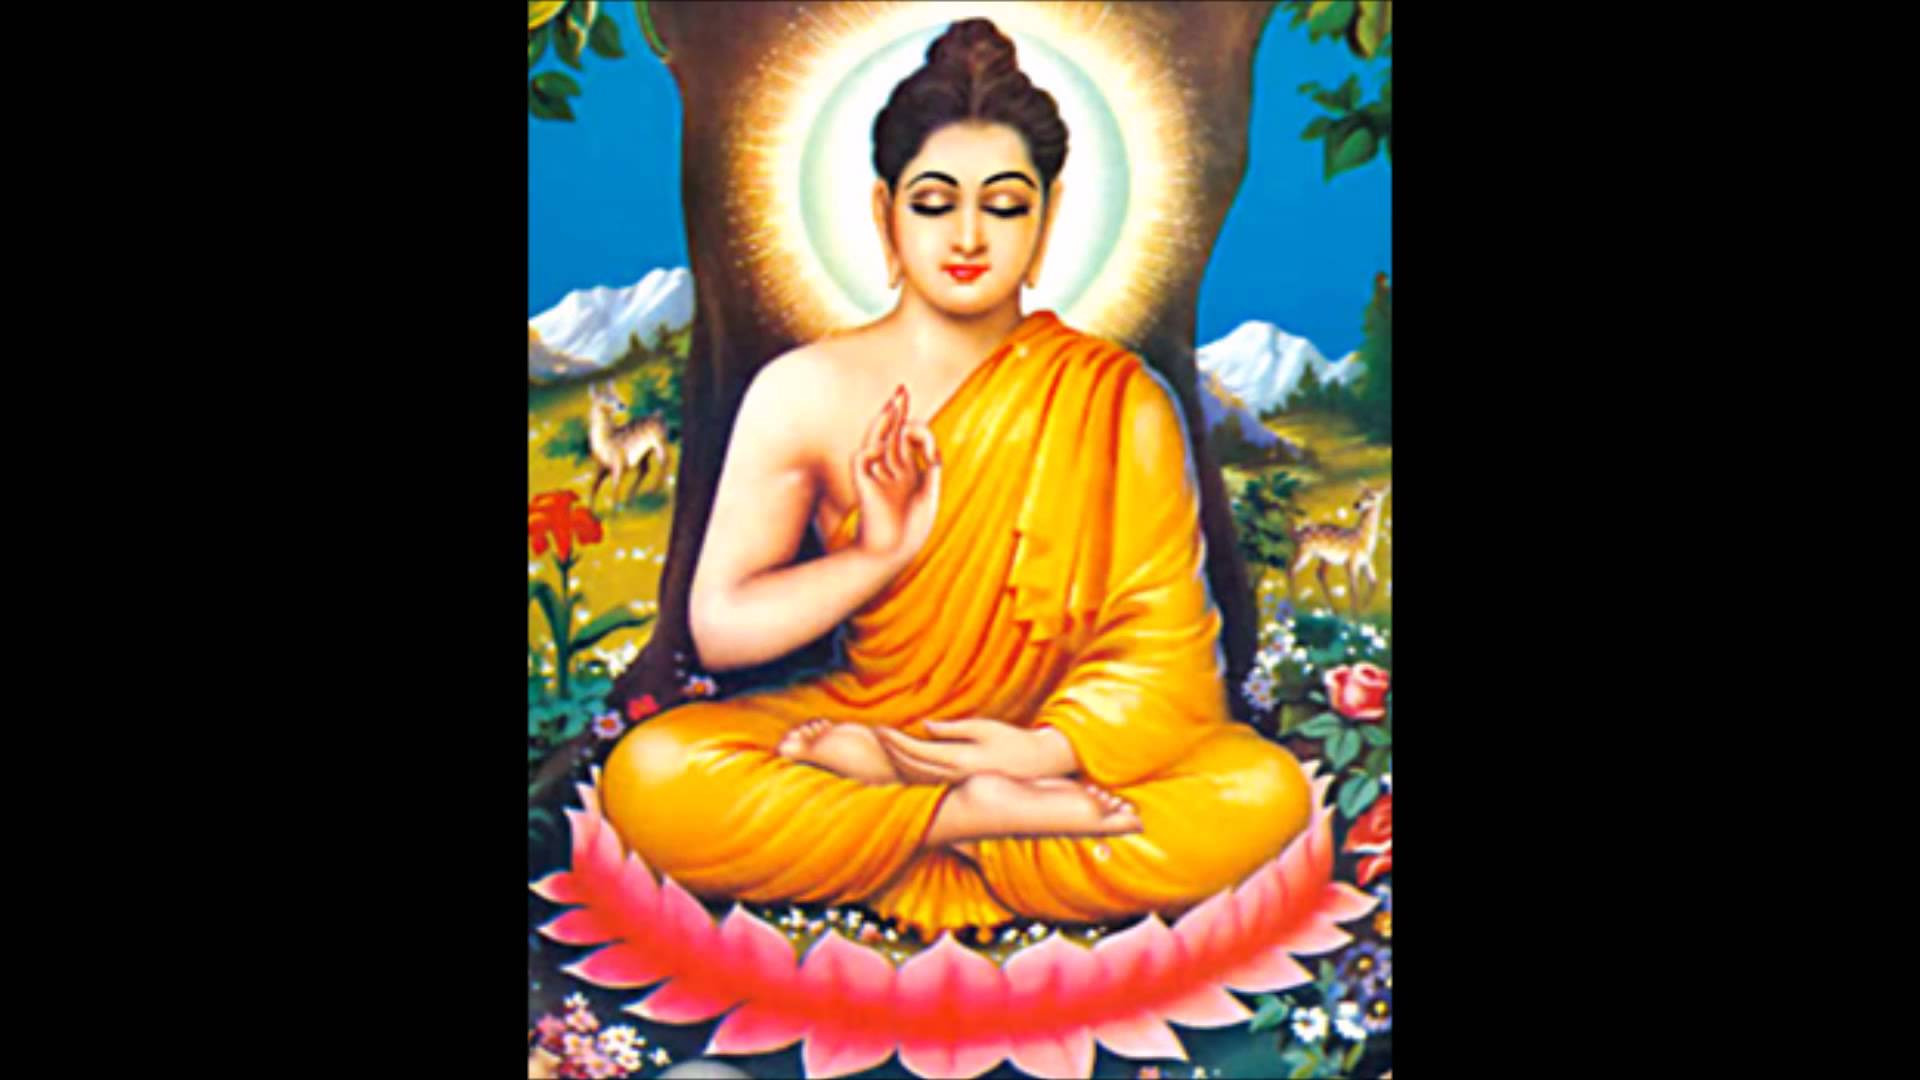 Download Lord Buddha Images Free Photo Lord Buddha Statues Temple Religion Free